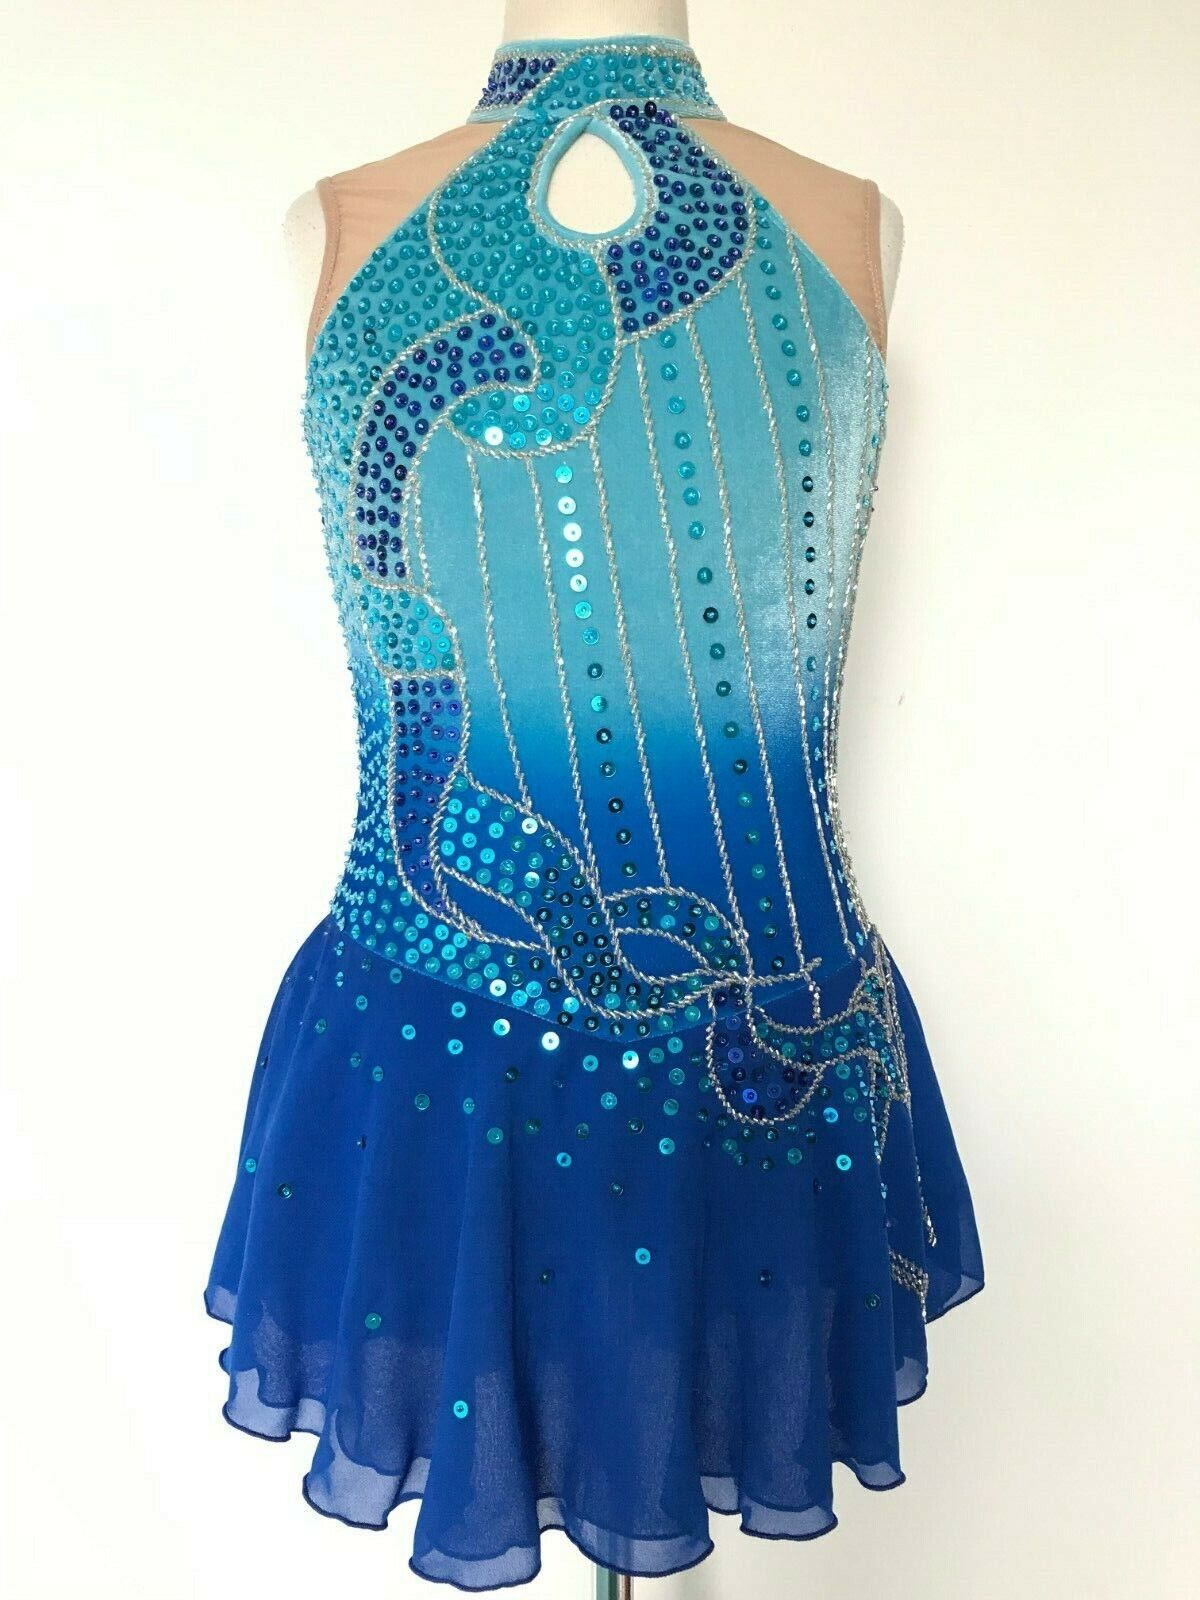 NEW FIGURE ICE SKATING BATON TWIRLING DRESS COSTUME ADULT L